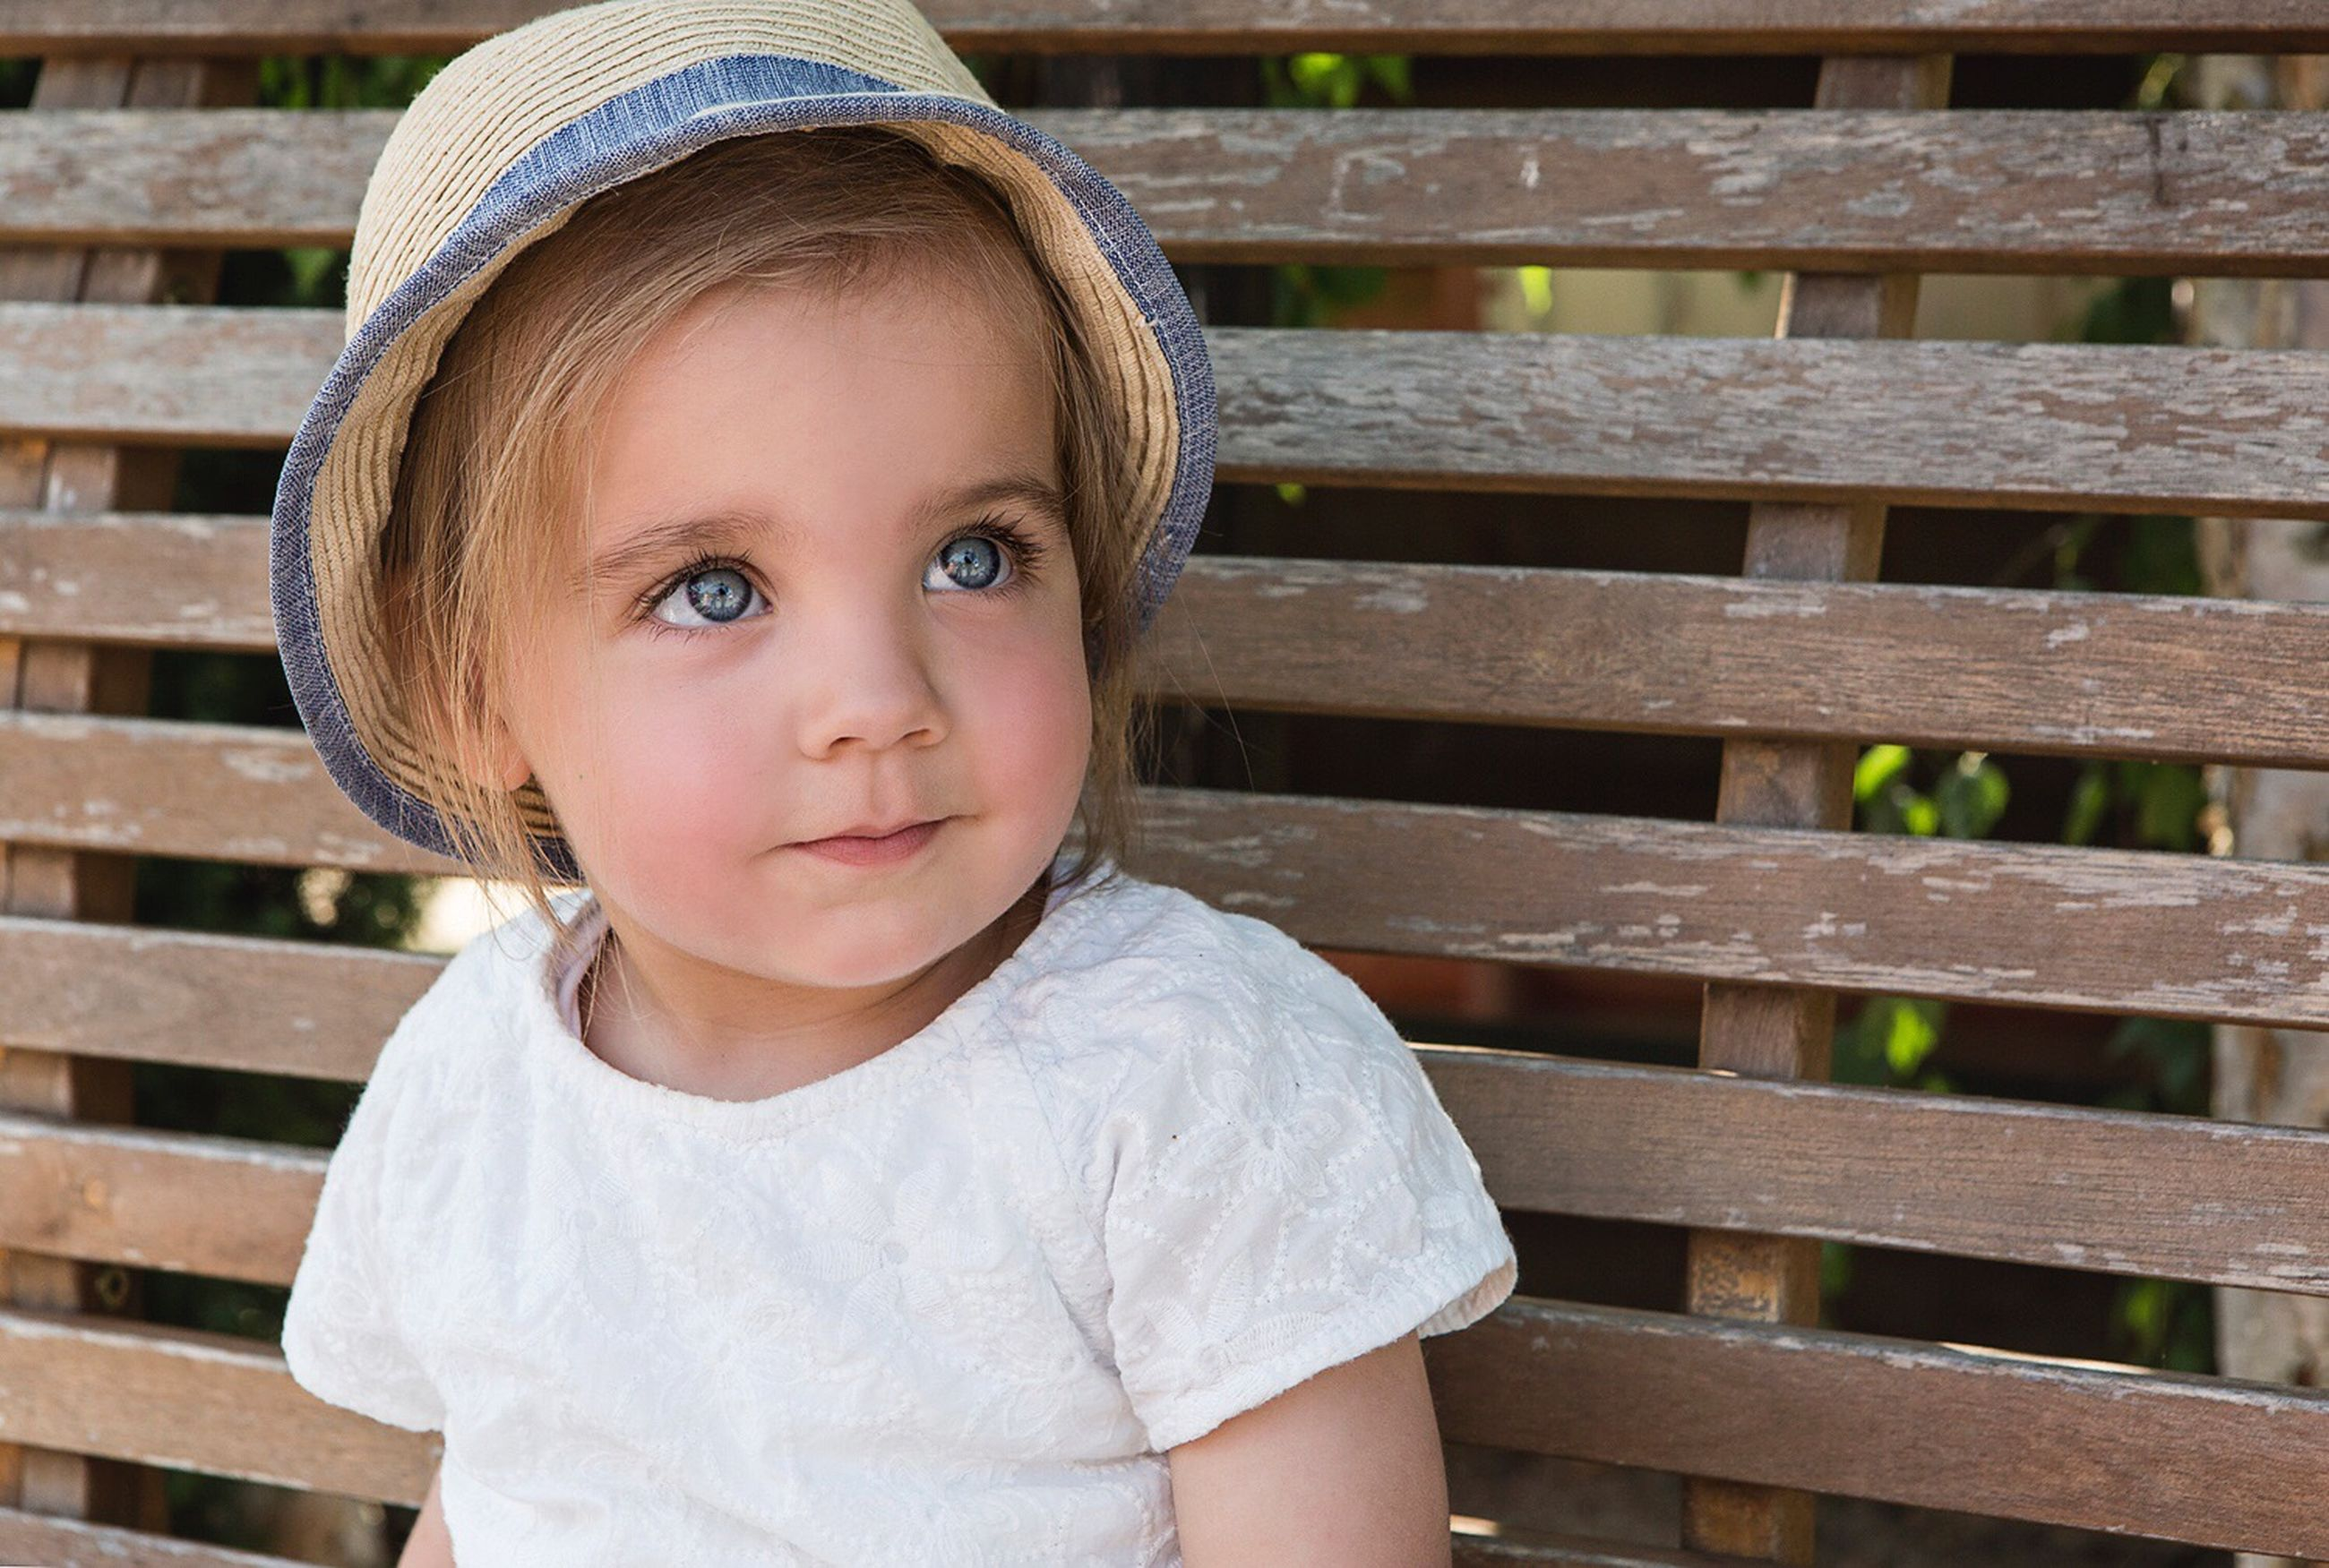 childhood, portrait, outdoors, children only, human face, child, one person, people, human body part, day, nature, close-up